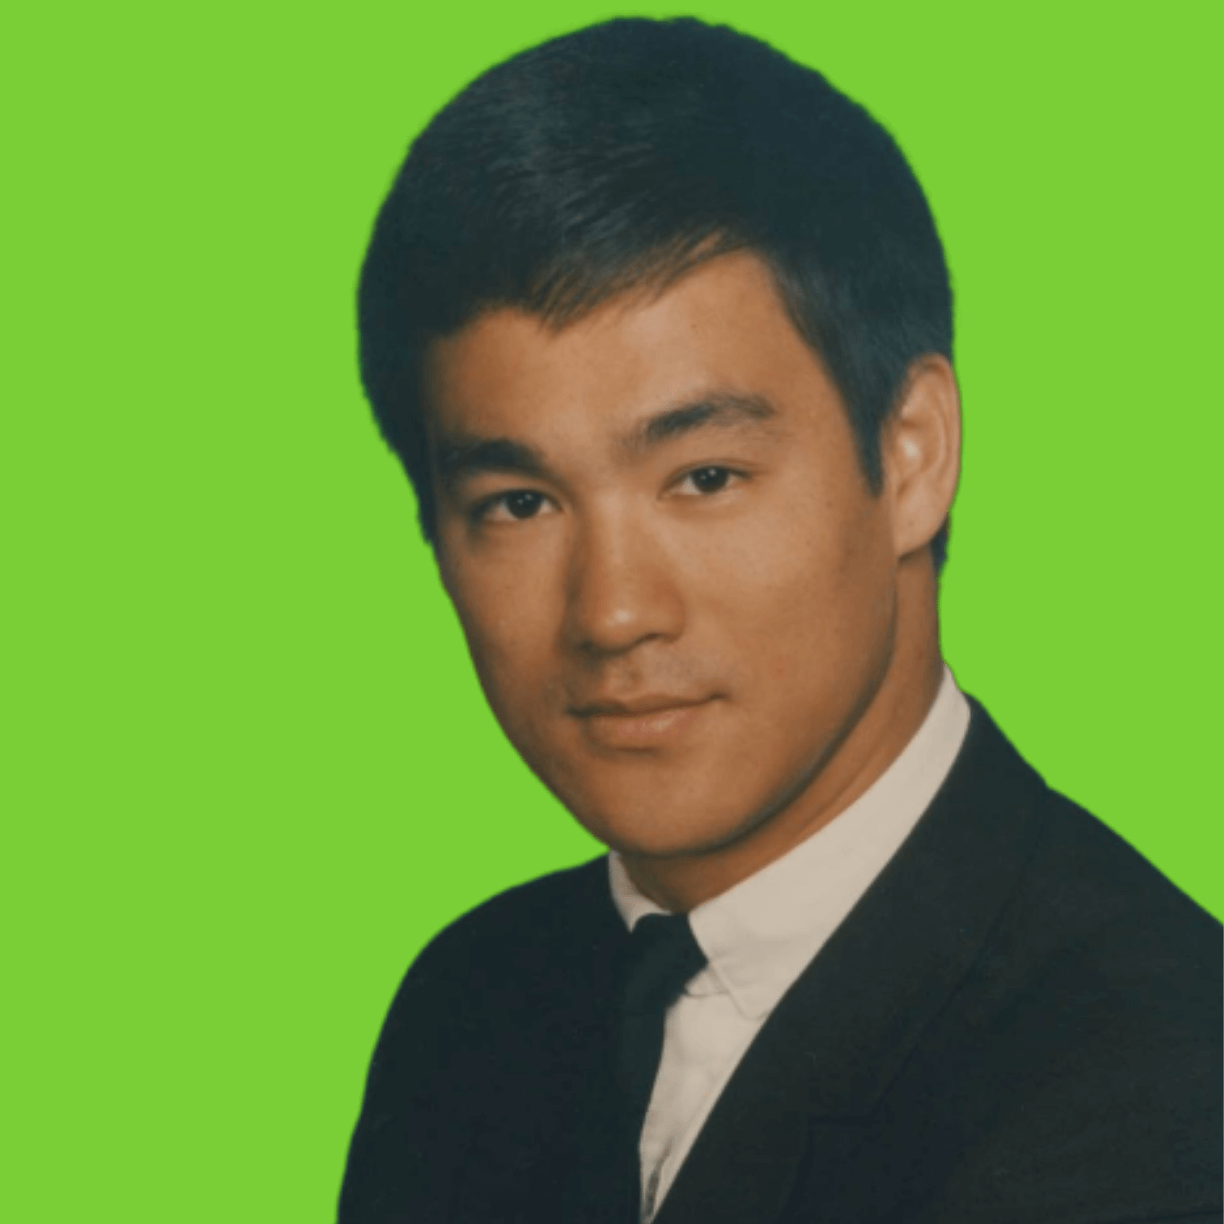 Bruce Lee Images Photos